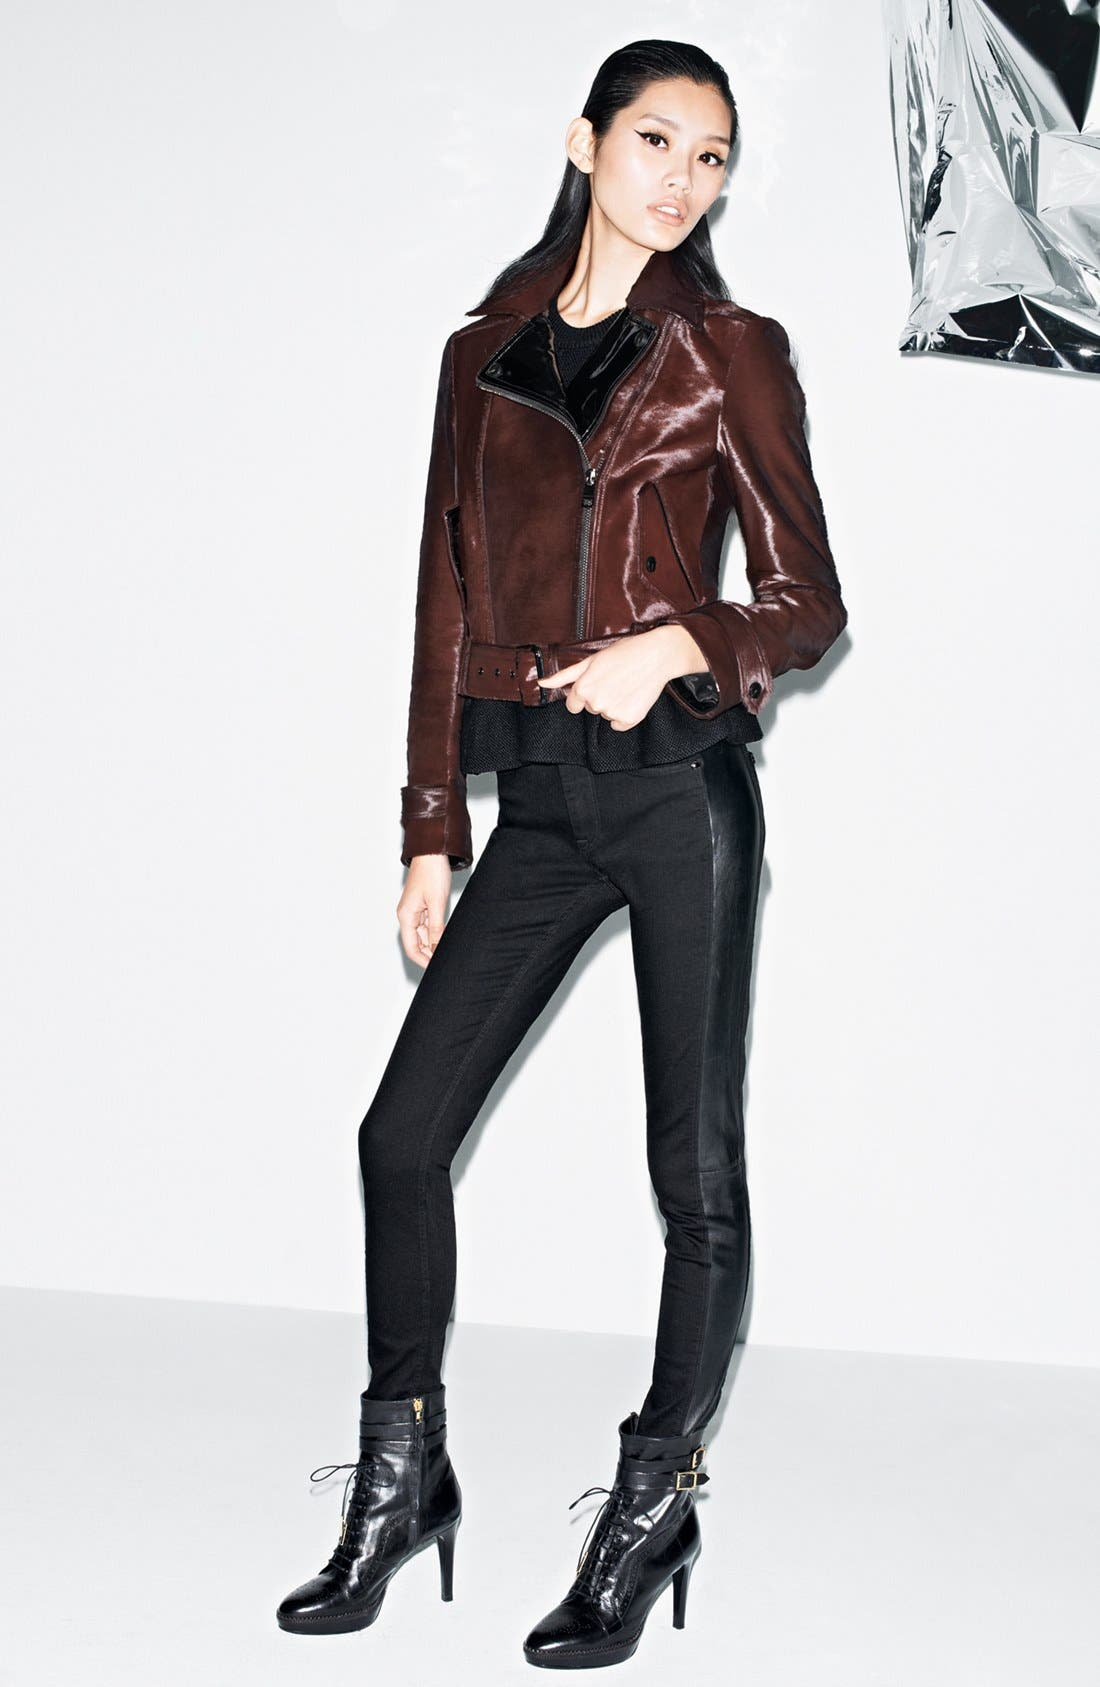 Main Image - Burberry London Moto Jacket, Sweater & Jeans